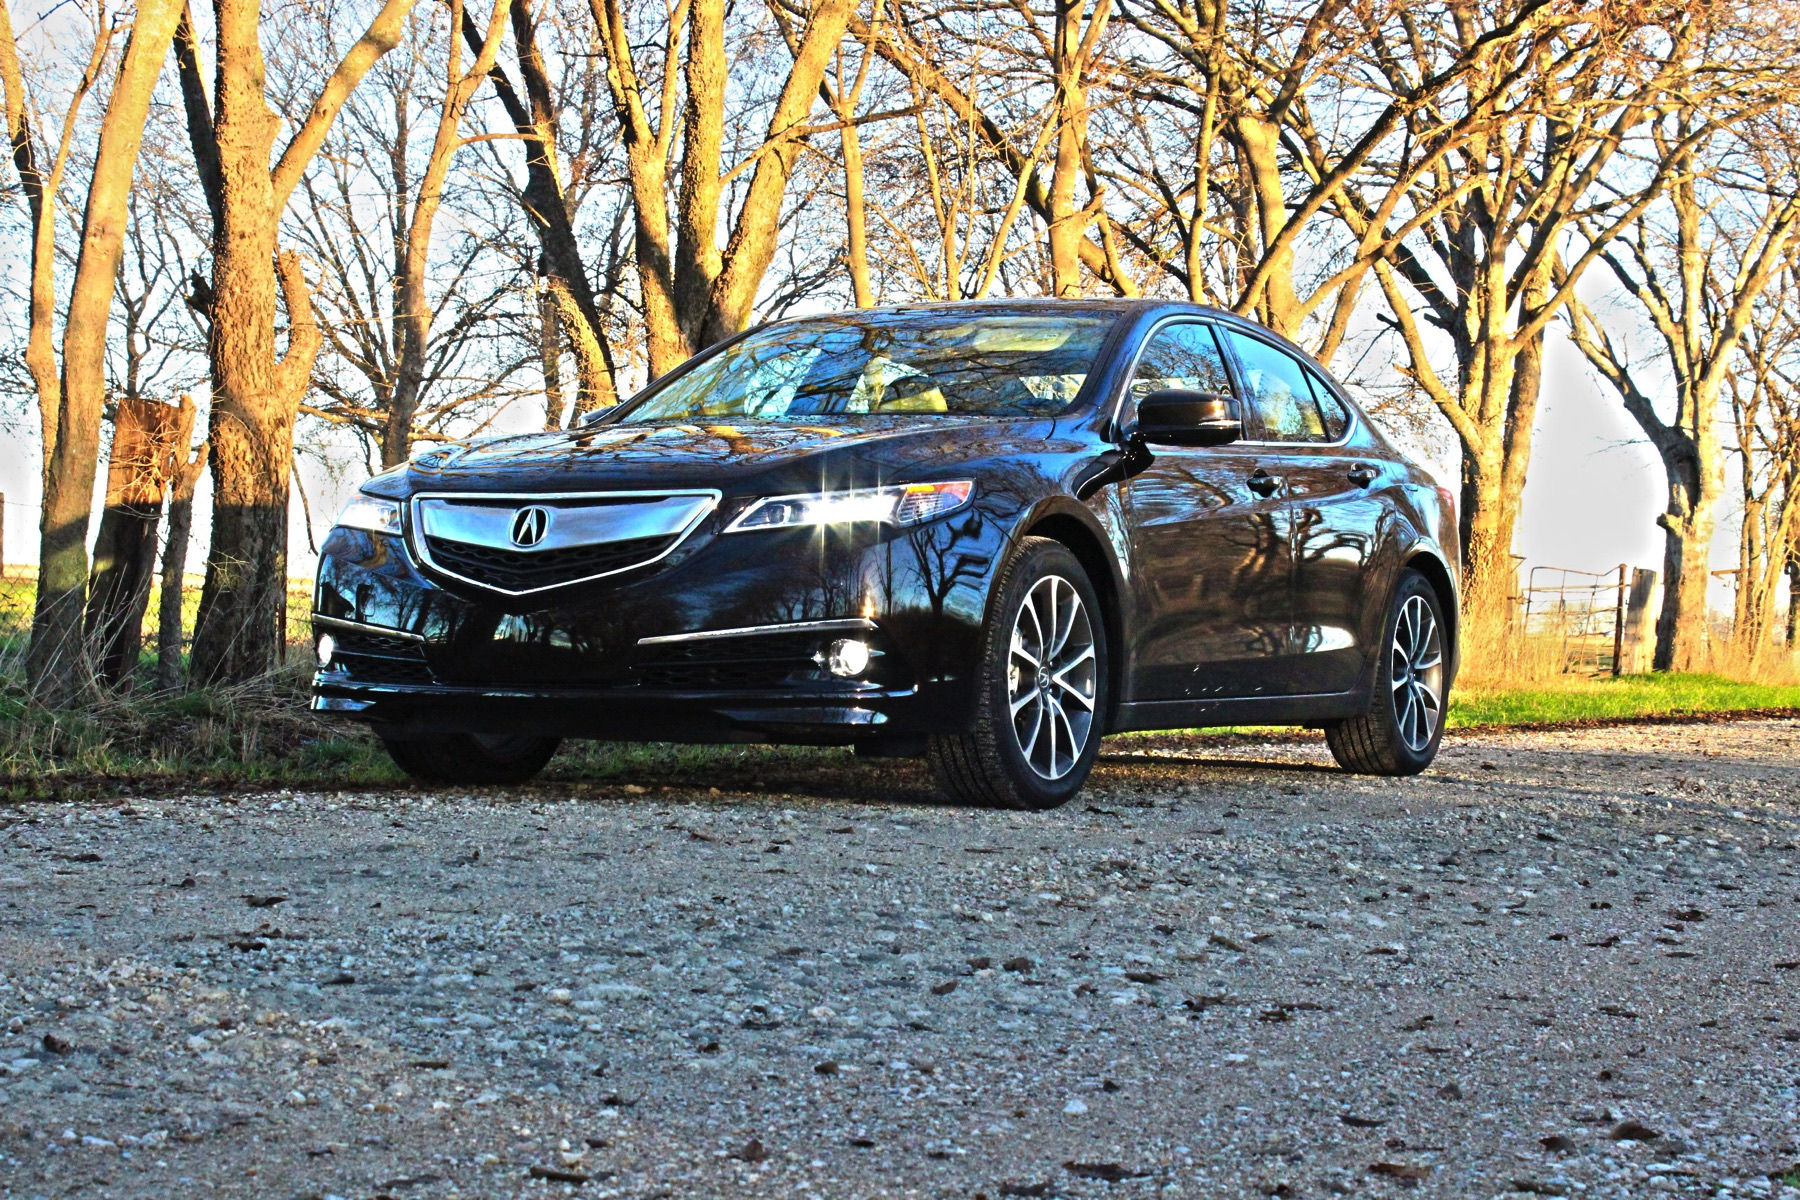 The 2015 Acura TLX Luxury Sedan